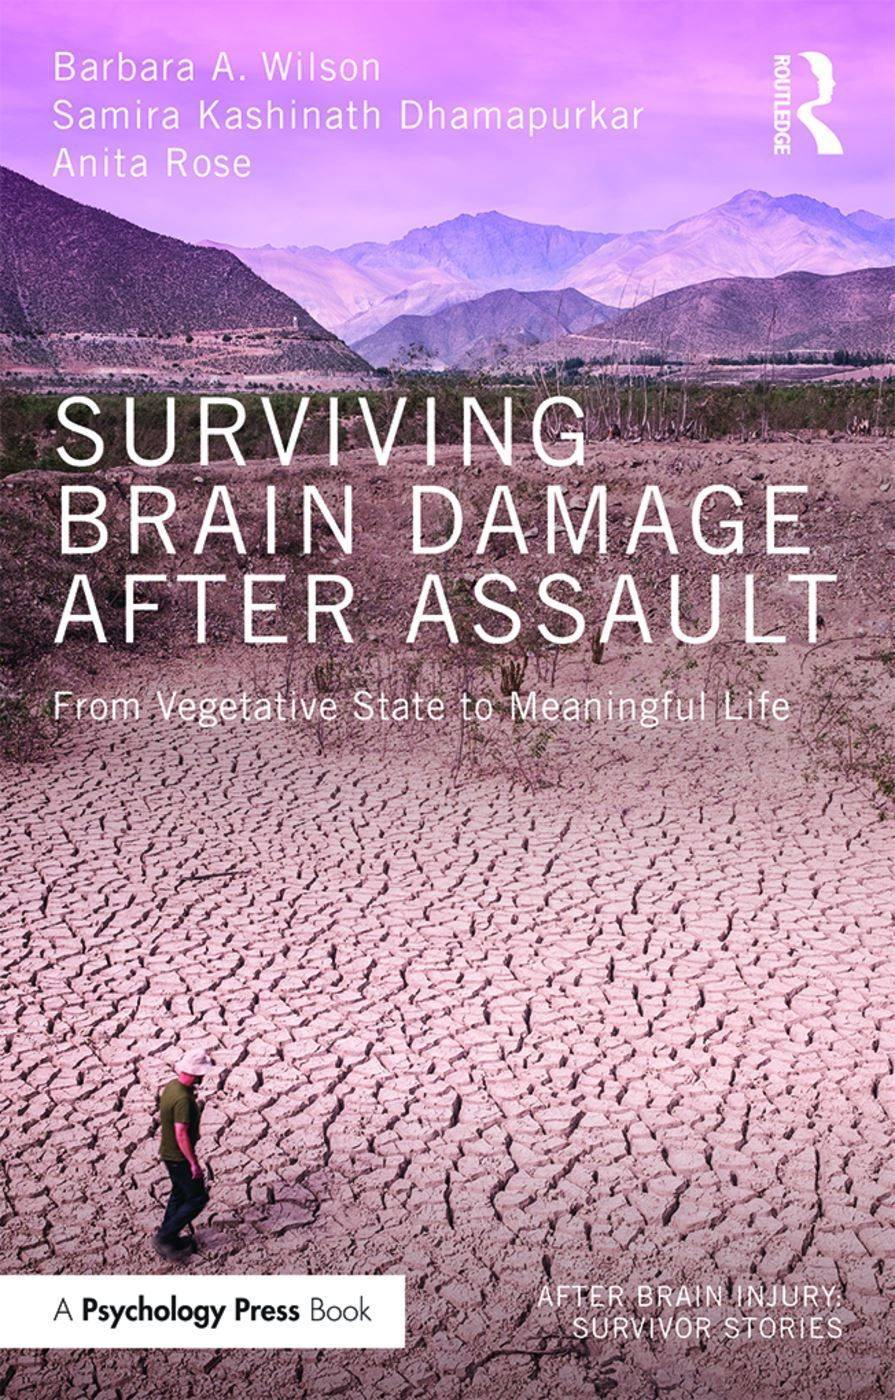 Surviving Brain Damage After Assault: From vegetative state to meaningful life written by Prof Barbara Wilson who is Chair of the NR-SIG-WFNR